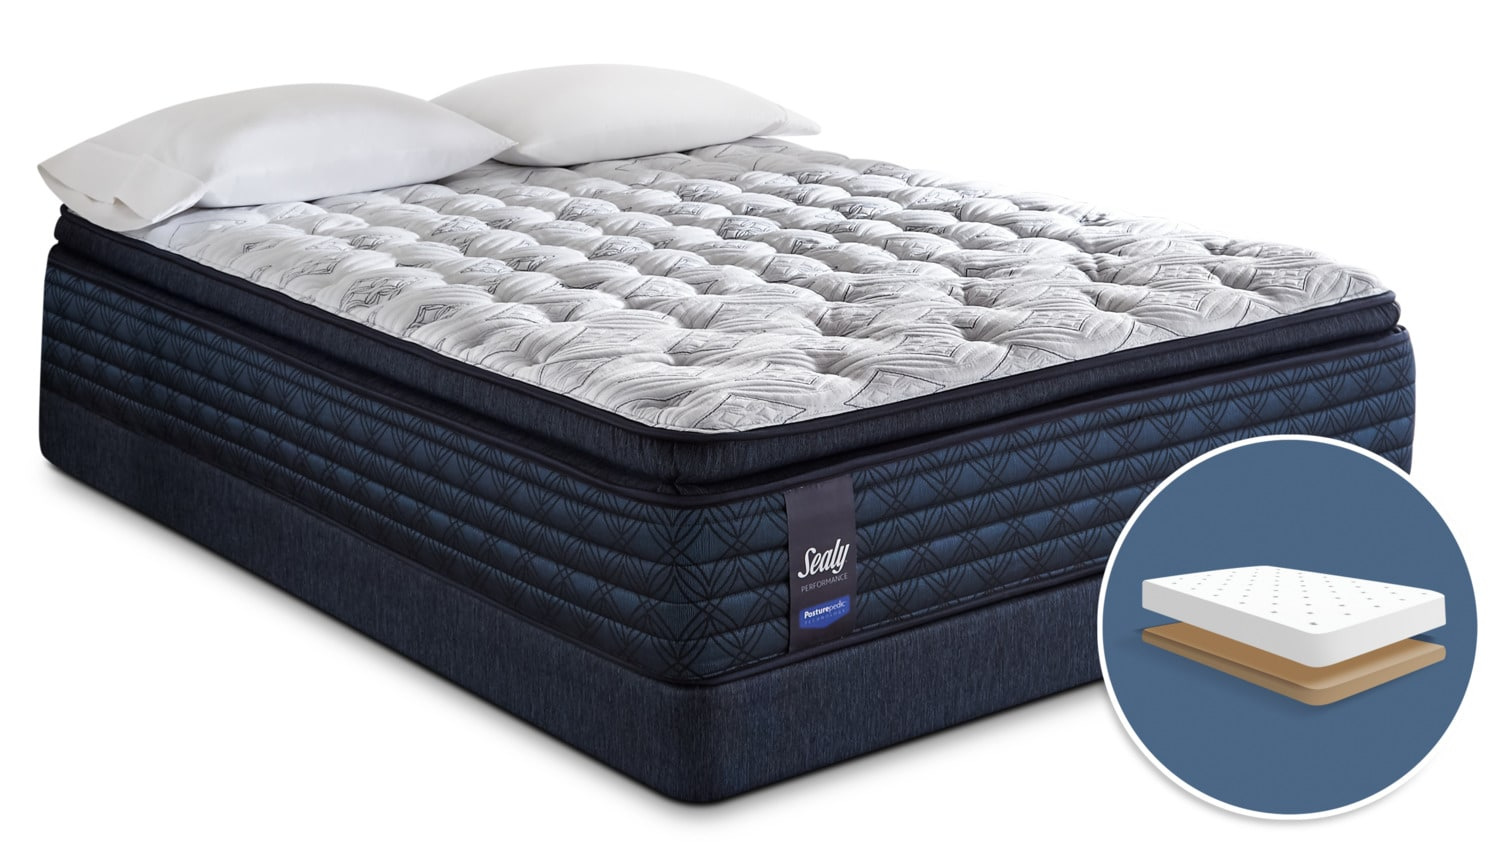 Sealy Posturepedic Hillshire Pillow Top Plush Low Profile Full Mattress Set United Furniture